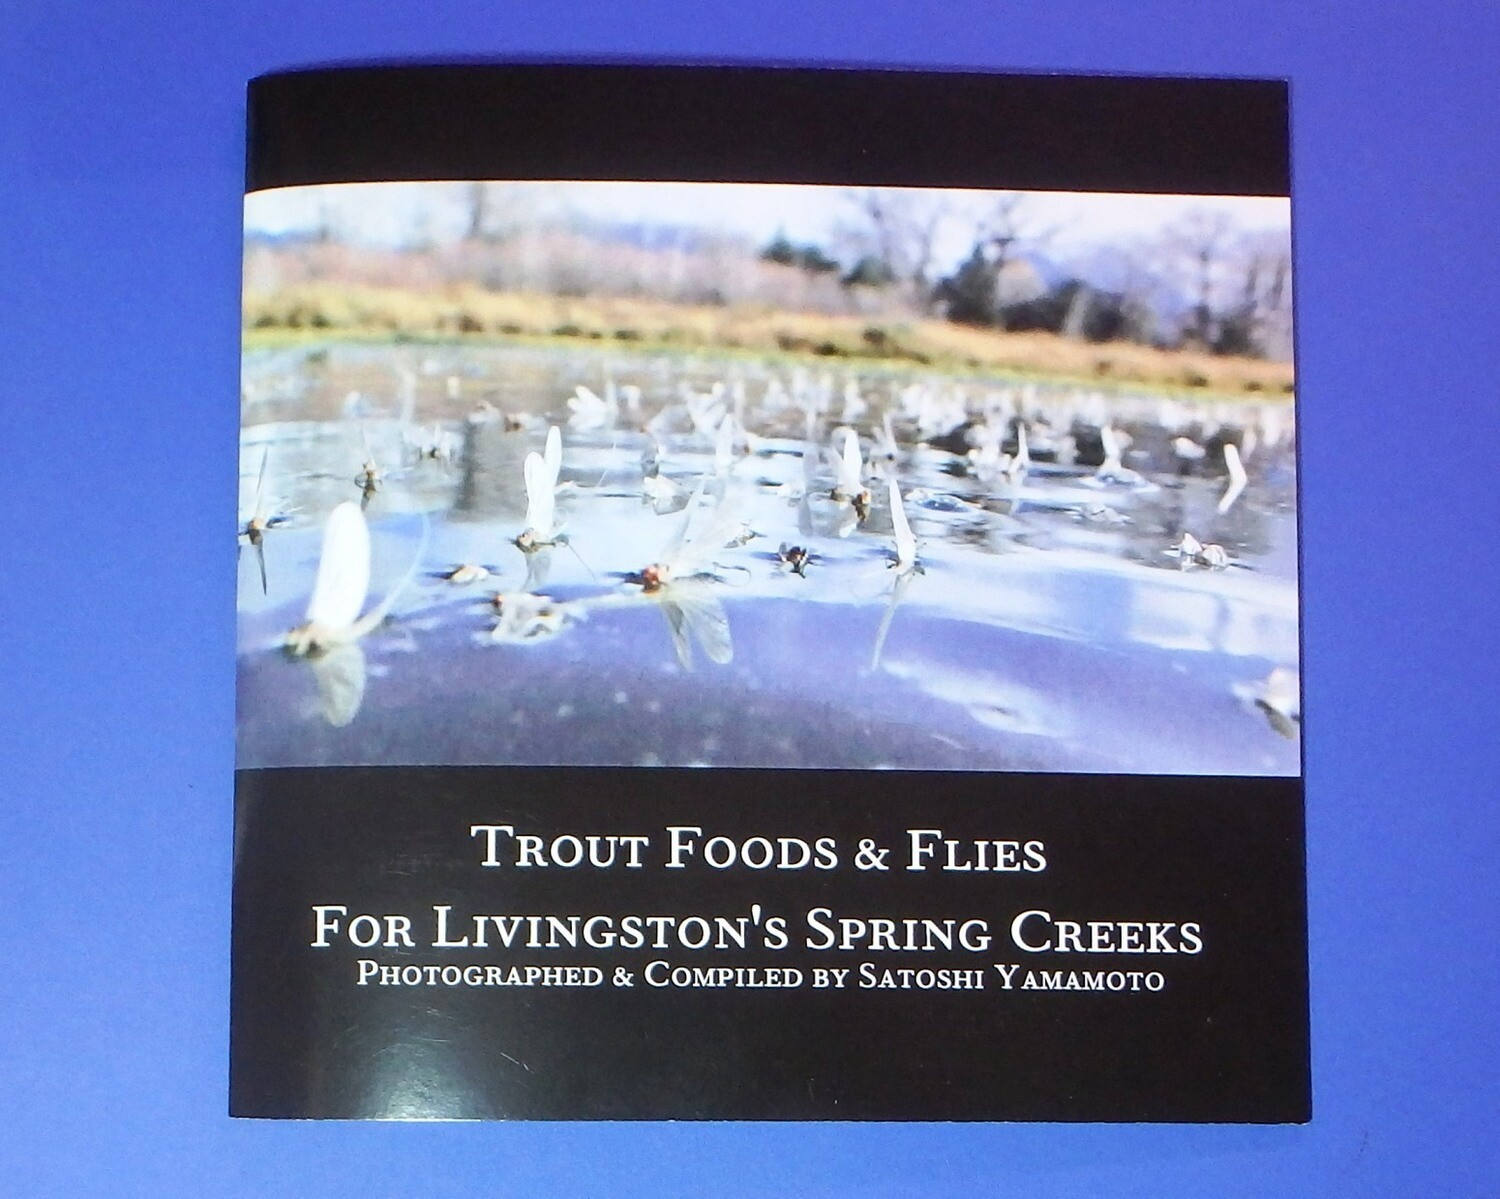 Trout Foods & Flies For Livingston's Spring Creeks